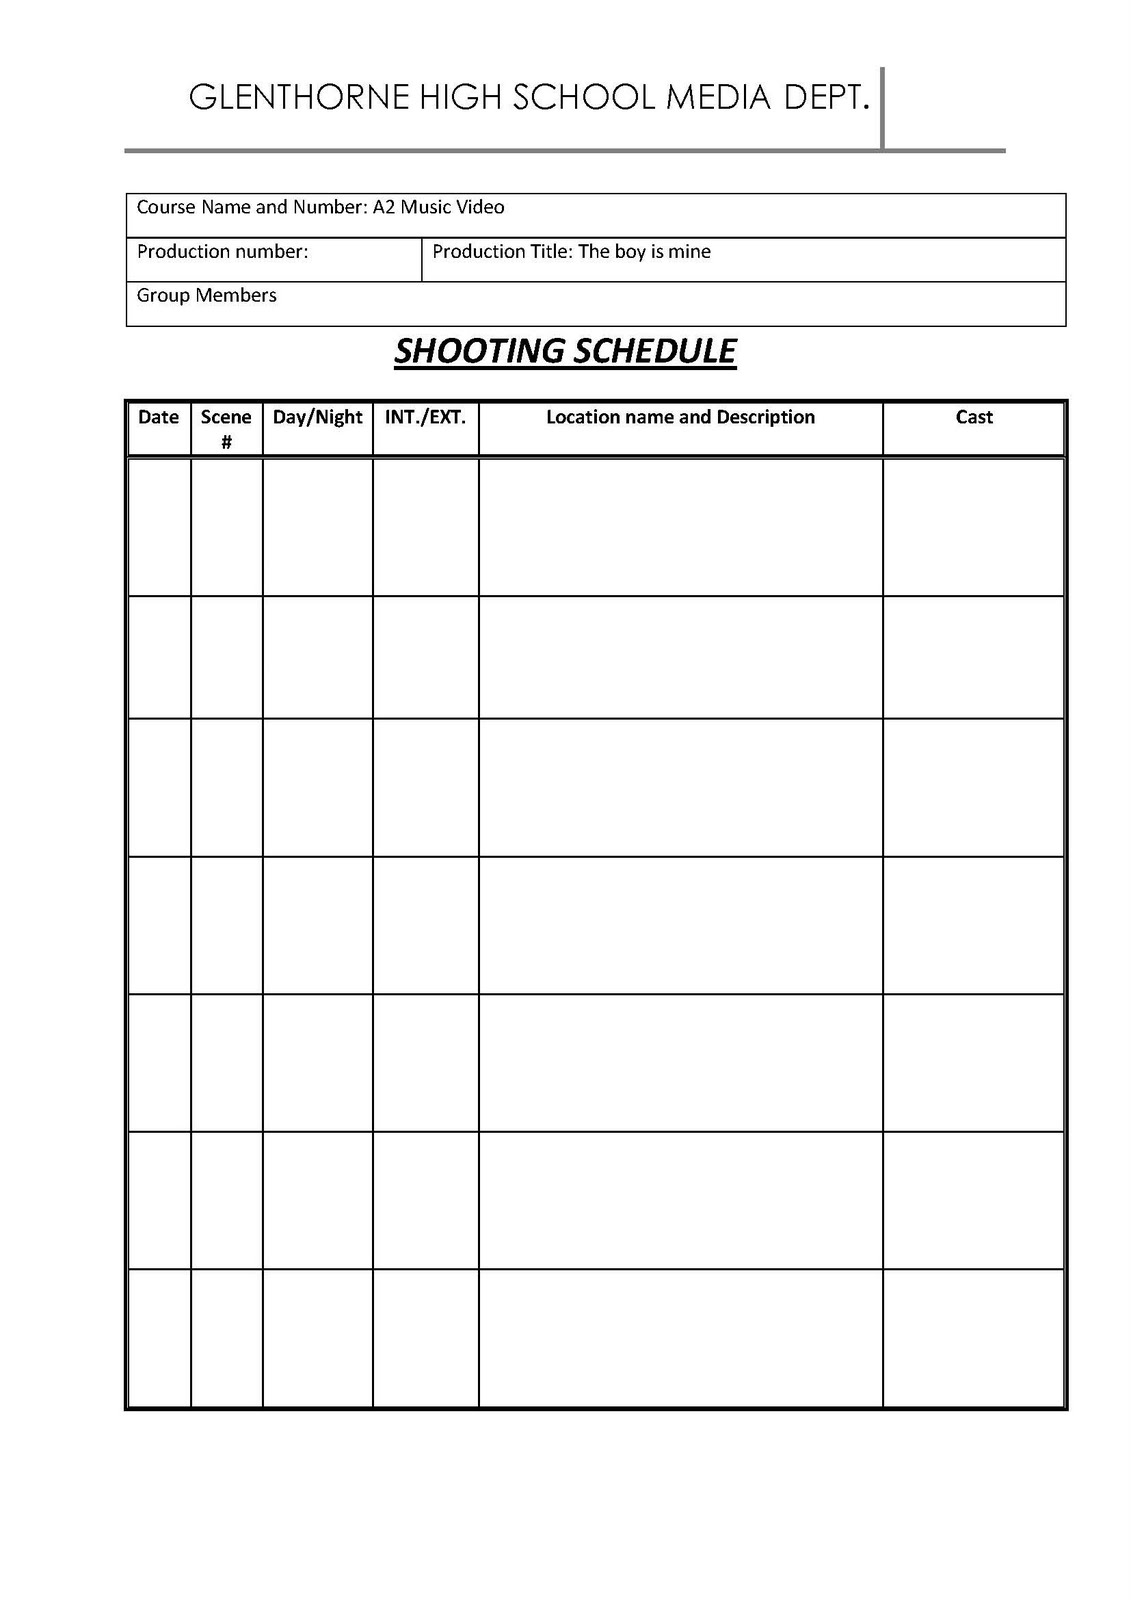 gabrielle roachford 12 shooting schedule. Black Bedroom Furniture Sets. Home Design Ideas